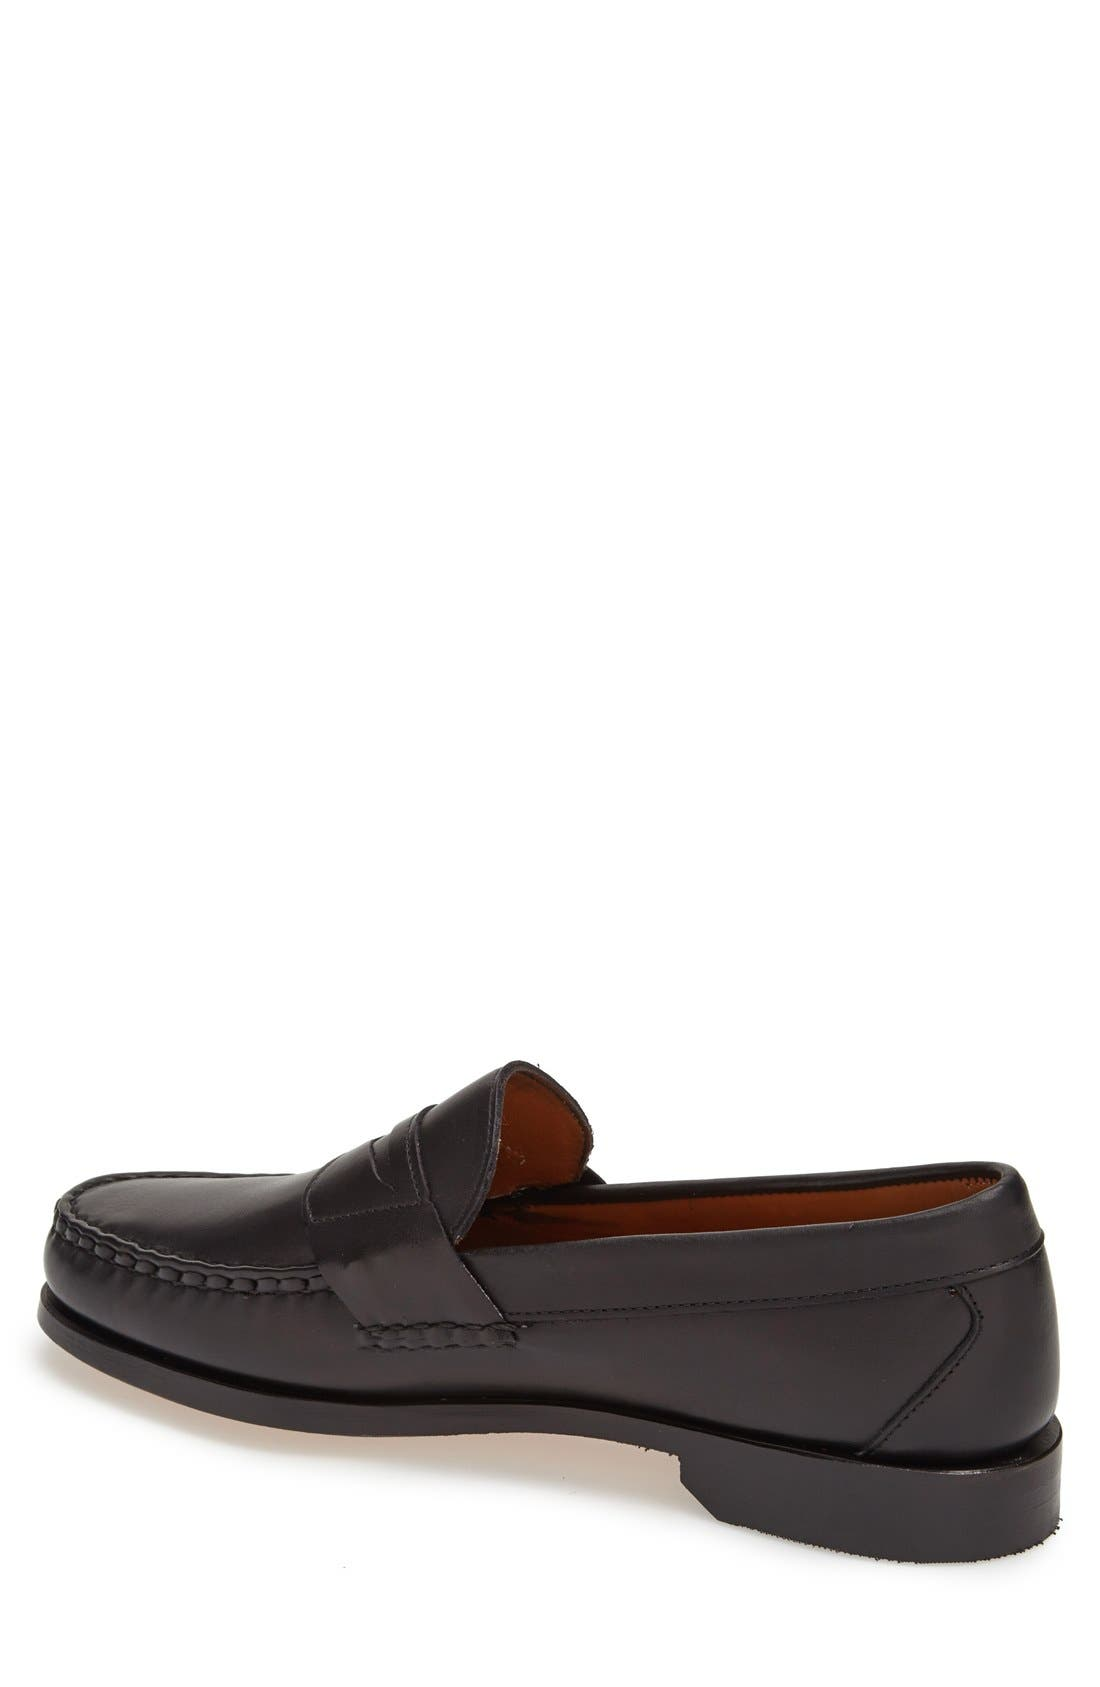 'Cavanaugh' Penny Loafer,                             Alternate thumbnail 2, color,                             Black Leather